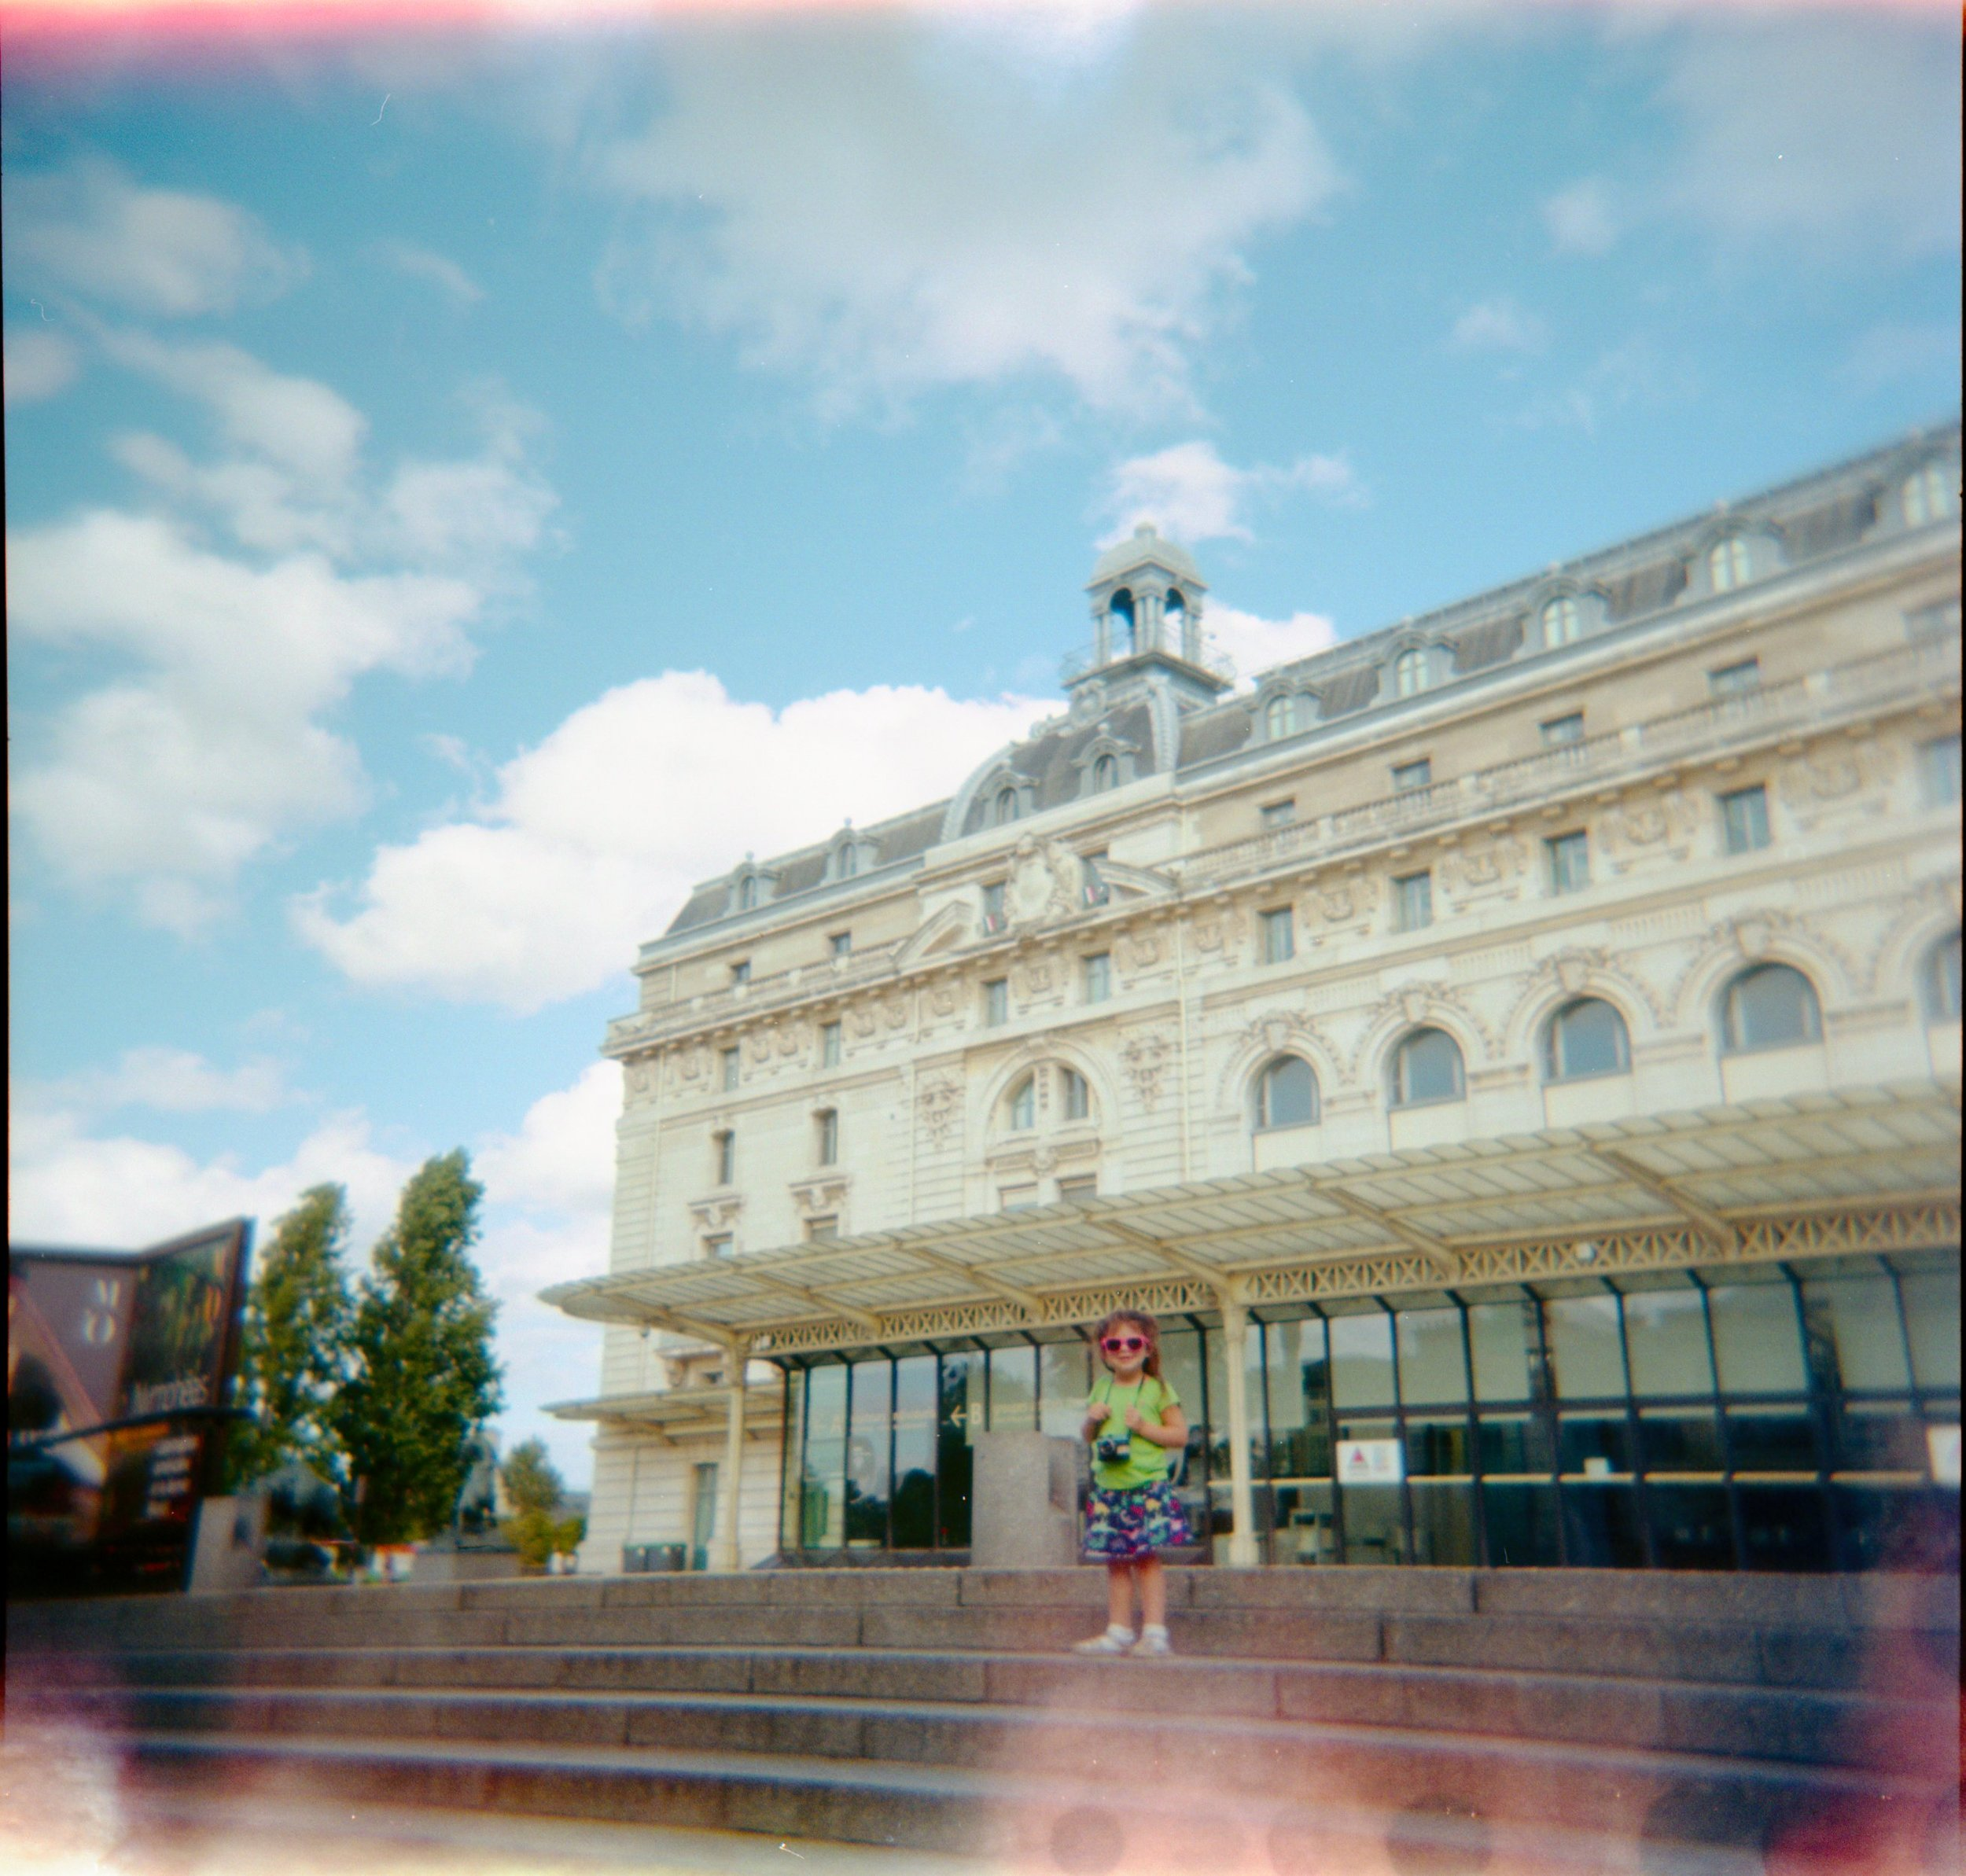 Holga photo of Museum Orsay